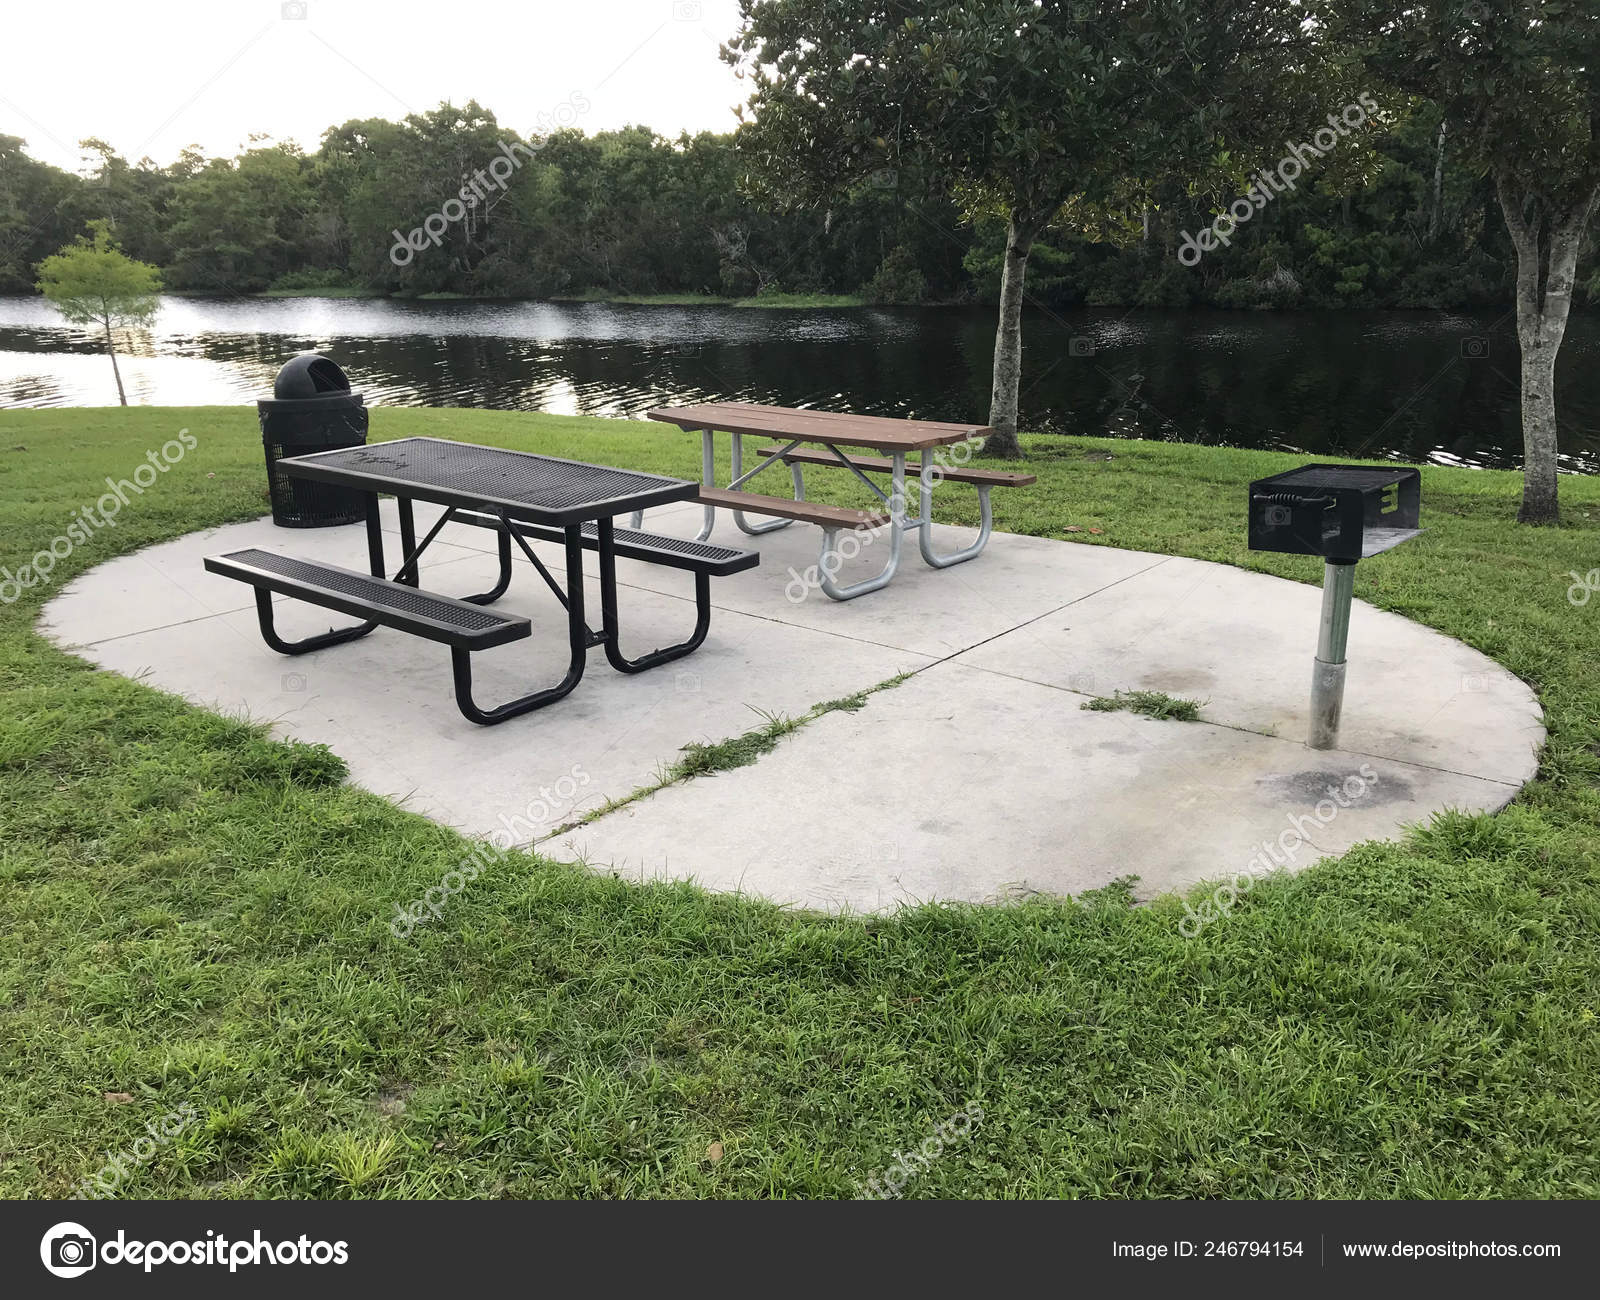 Cool Picnic Tables Benches And Grill In Park Photo Image Stock Caraccident5 Cool Chair Designs And Ideas Caraccident5Info